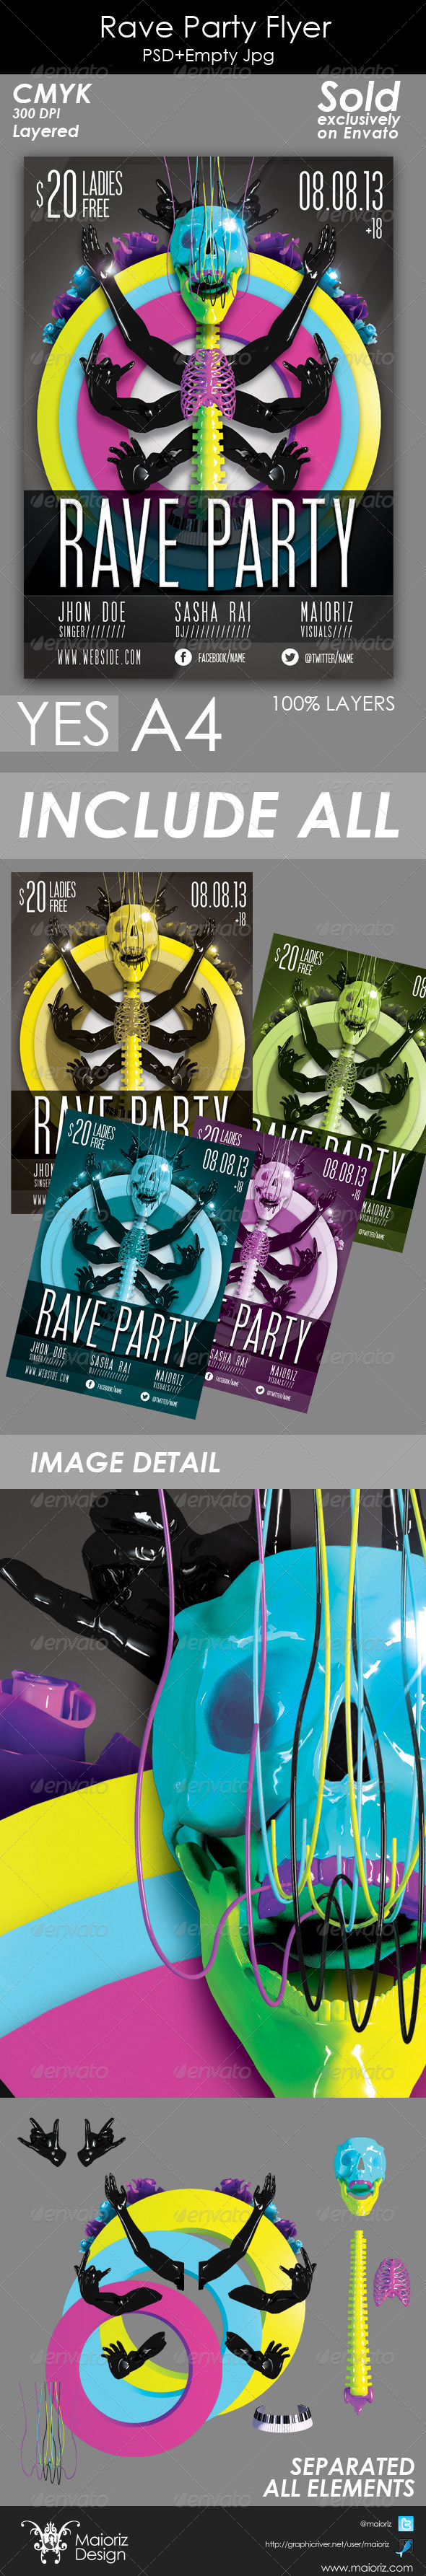 GraphicRiver Rave Party Flyer 4822272